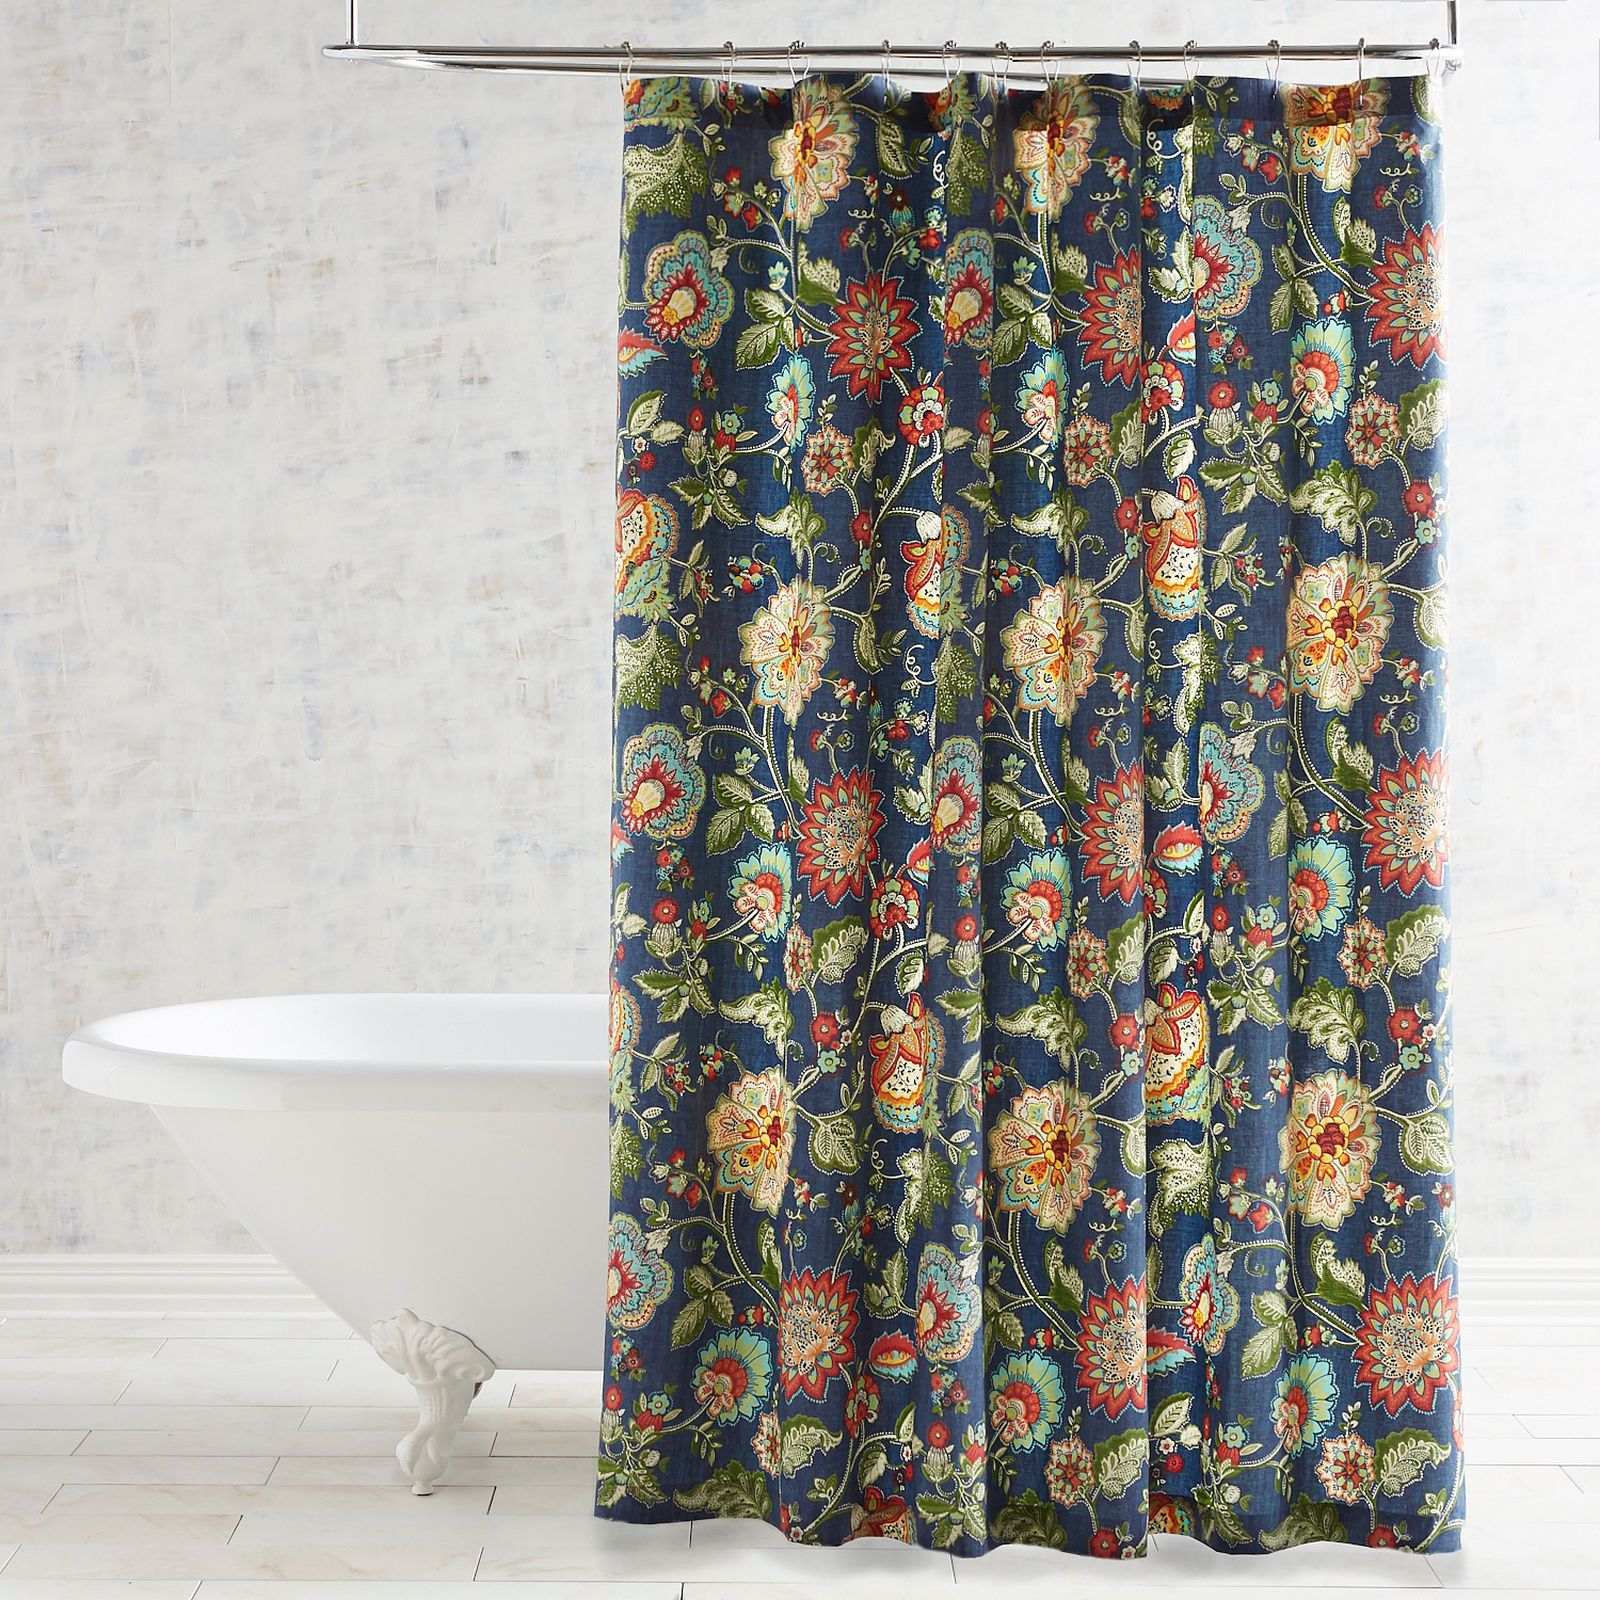 Avery Floral Shower Curtain Pier 1 Imports Floral Shower